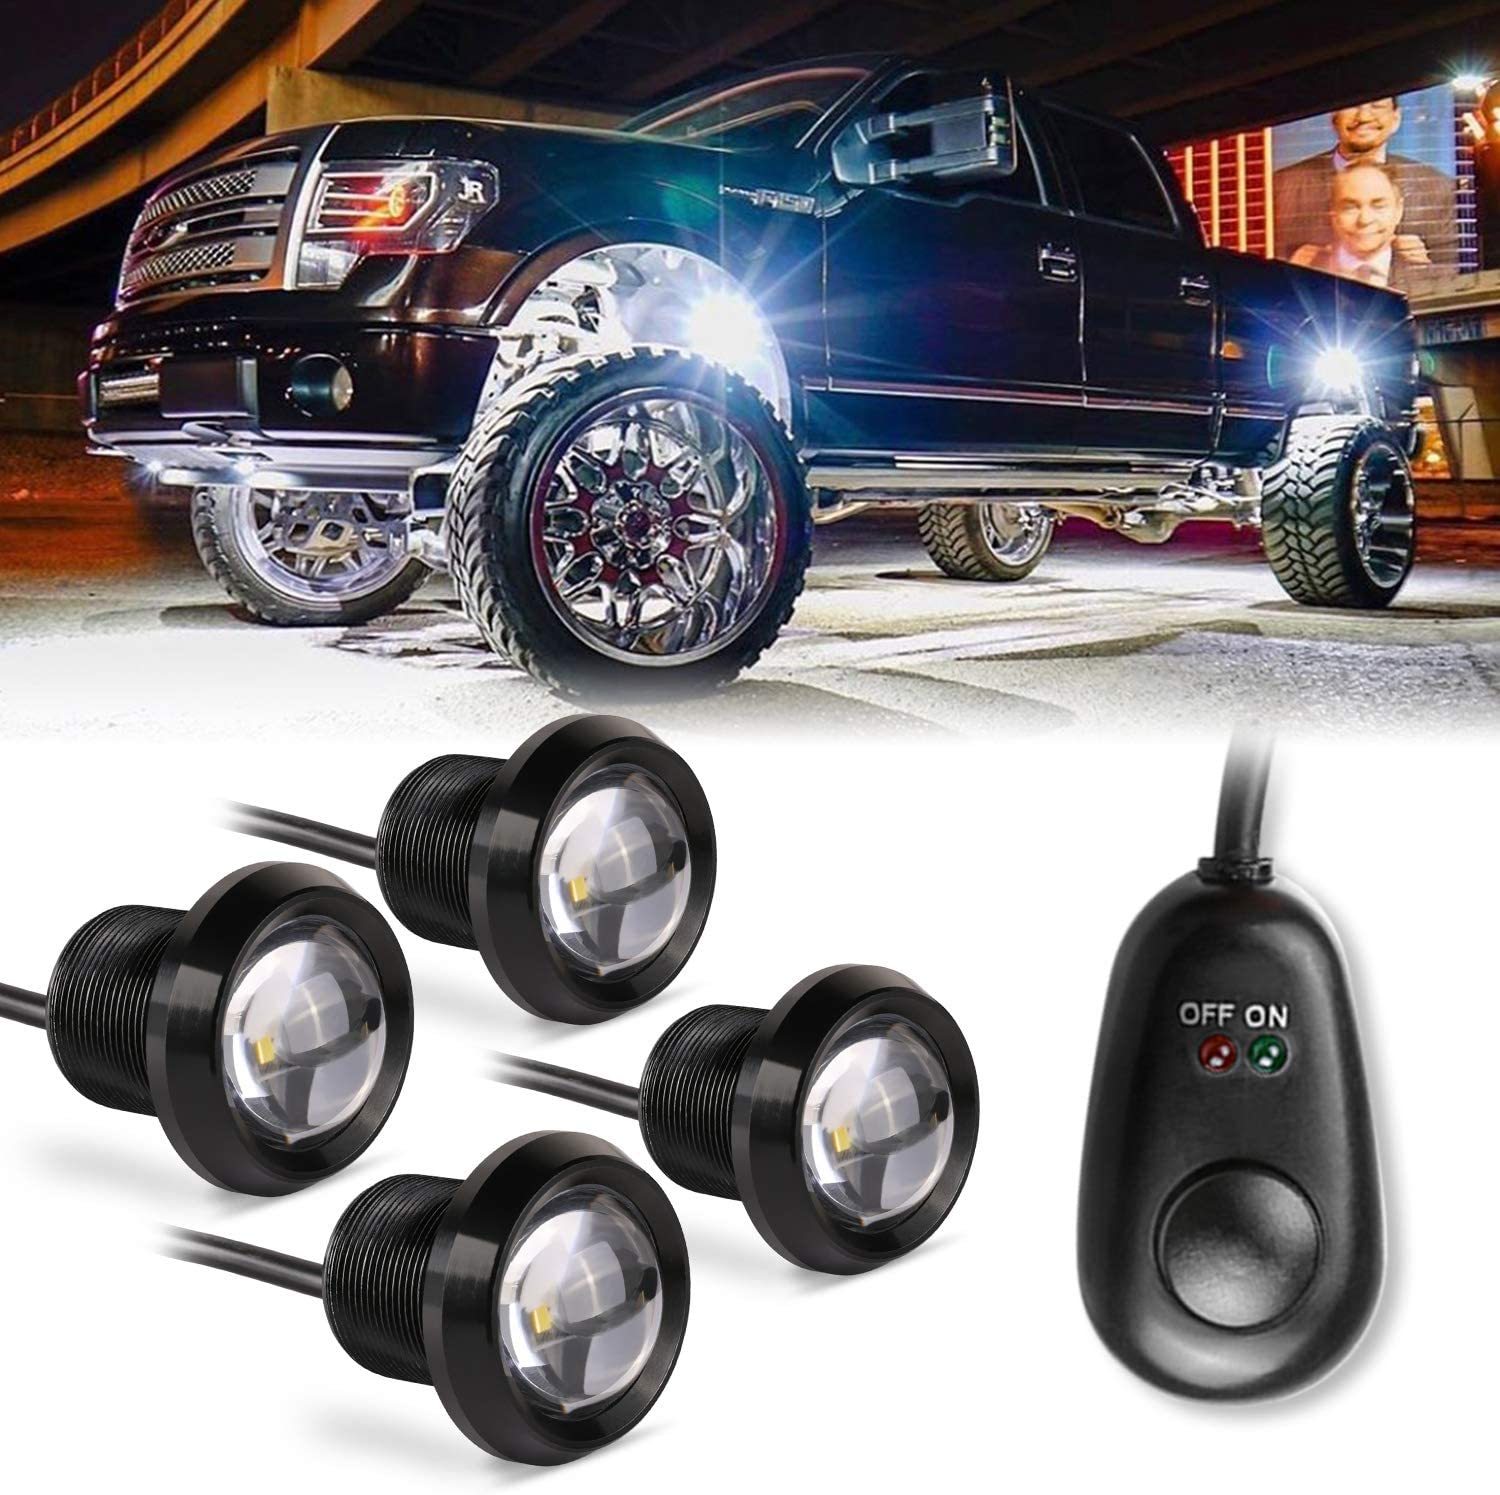 Yvoone-Auto 4Pods White Underglow Lights Kit Neon Underbody Rock Light for JEEP Off Road Truck RZR Auto Car Boat ATV SUV Waterproof High Power Neon Trail Rig Lights Pack of 4,White